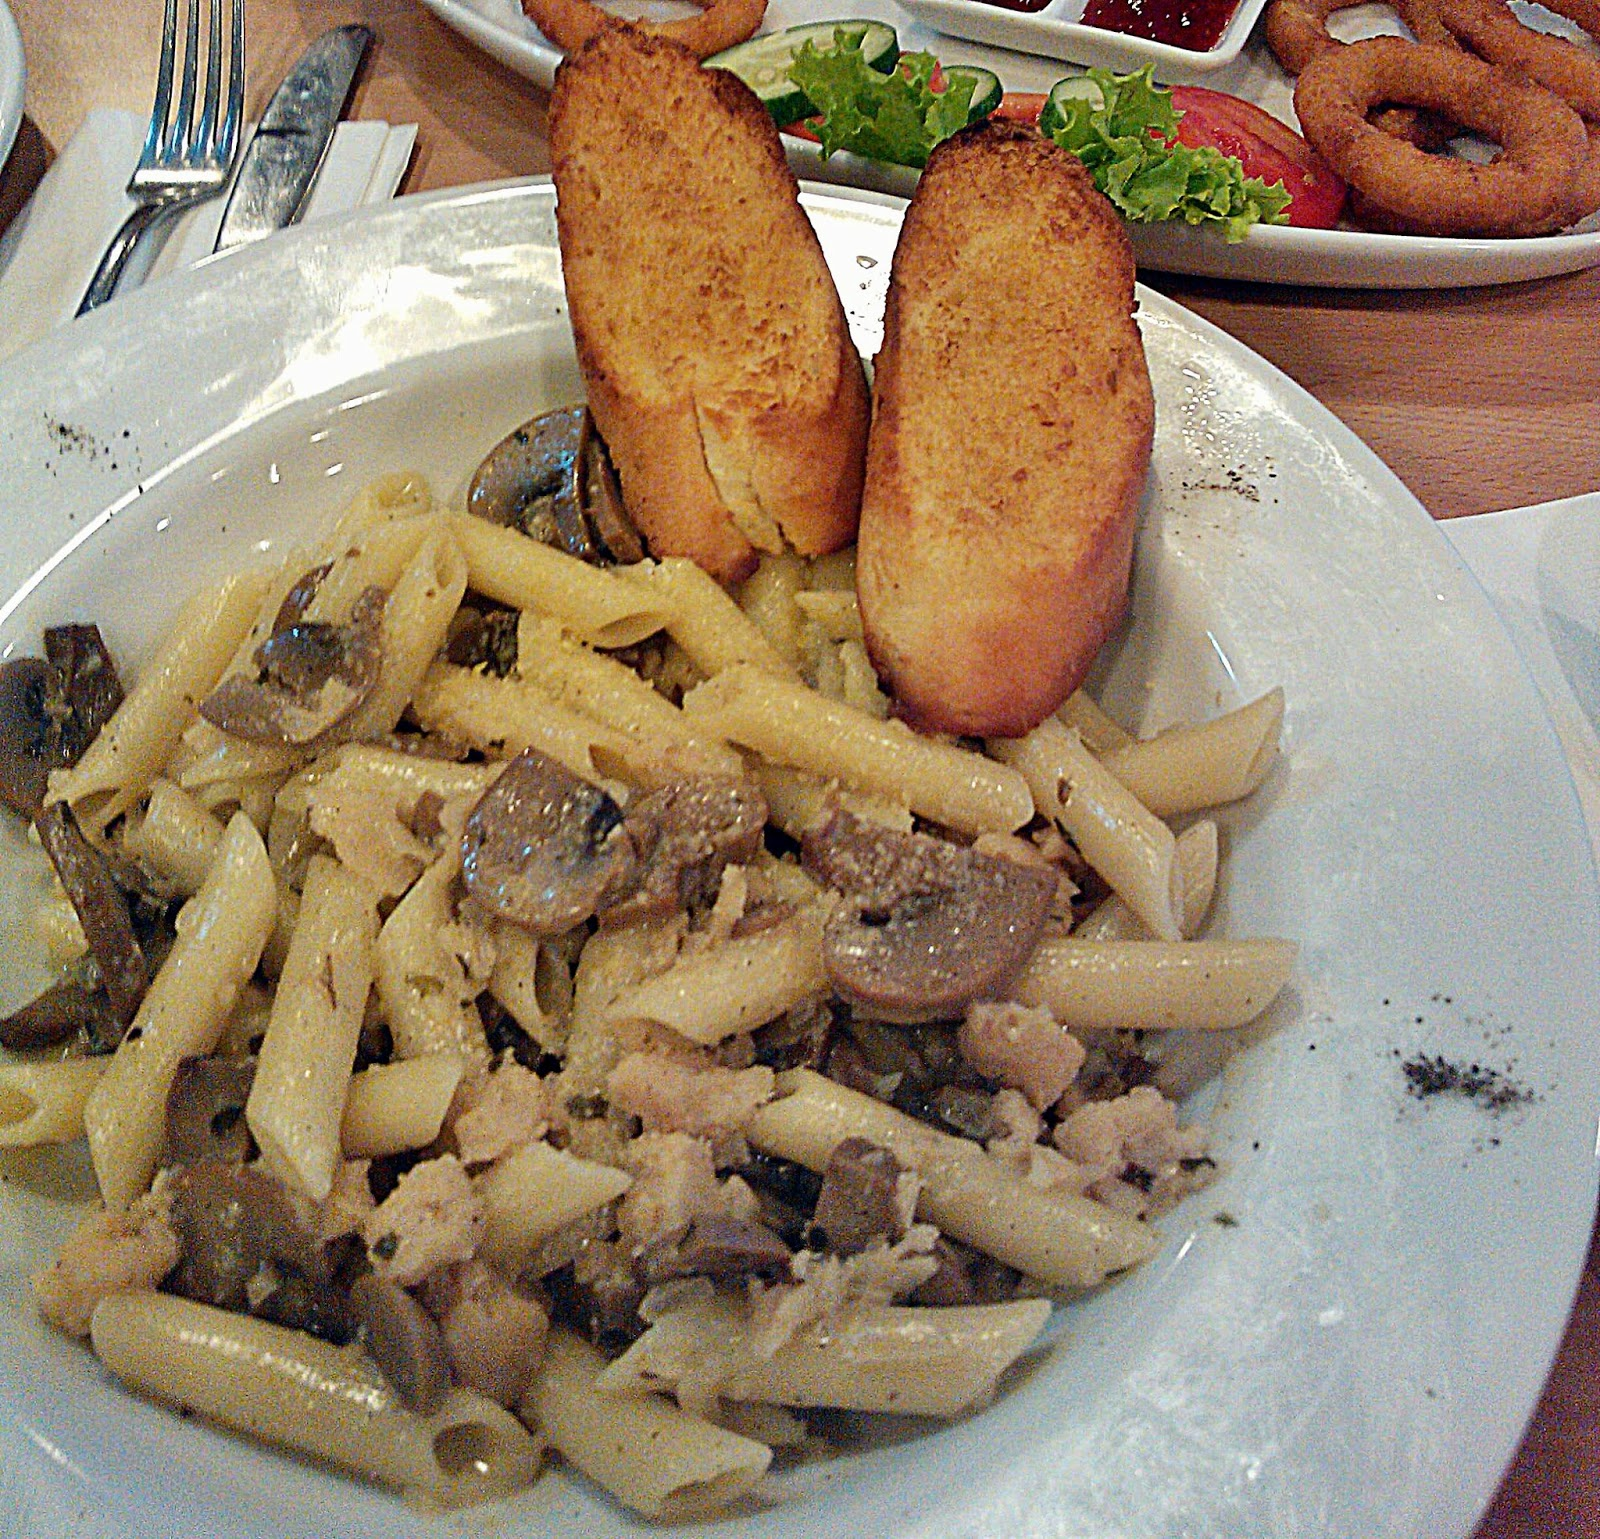 Dhanmondi Kitchens Chicken Mushroom Pasta From Pizza Hut